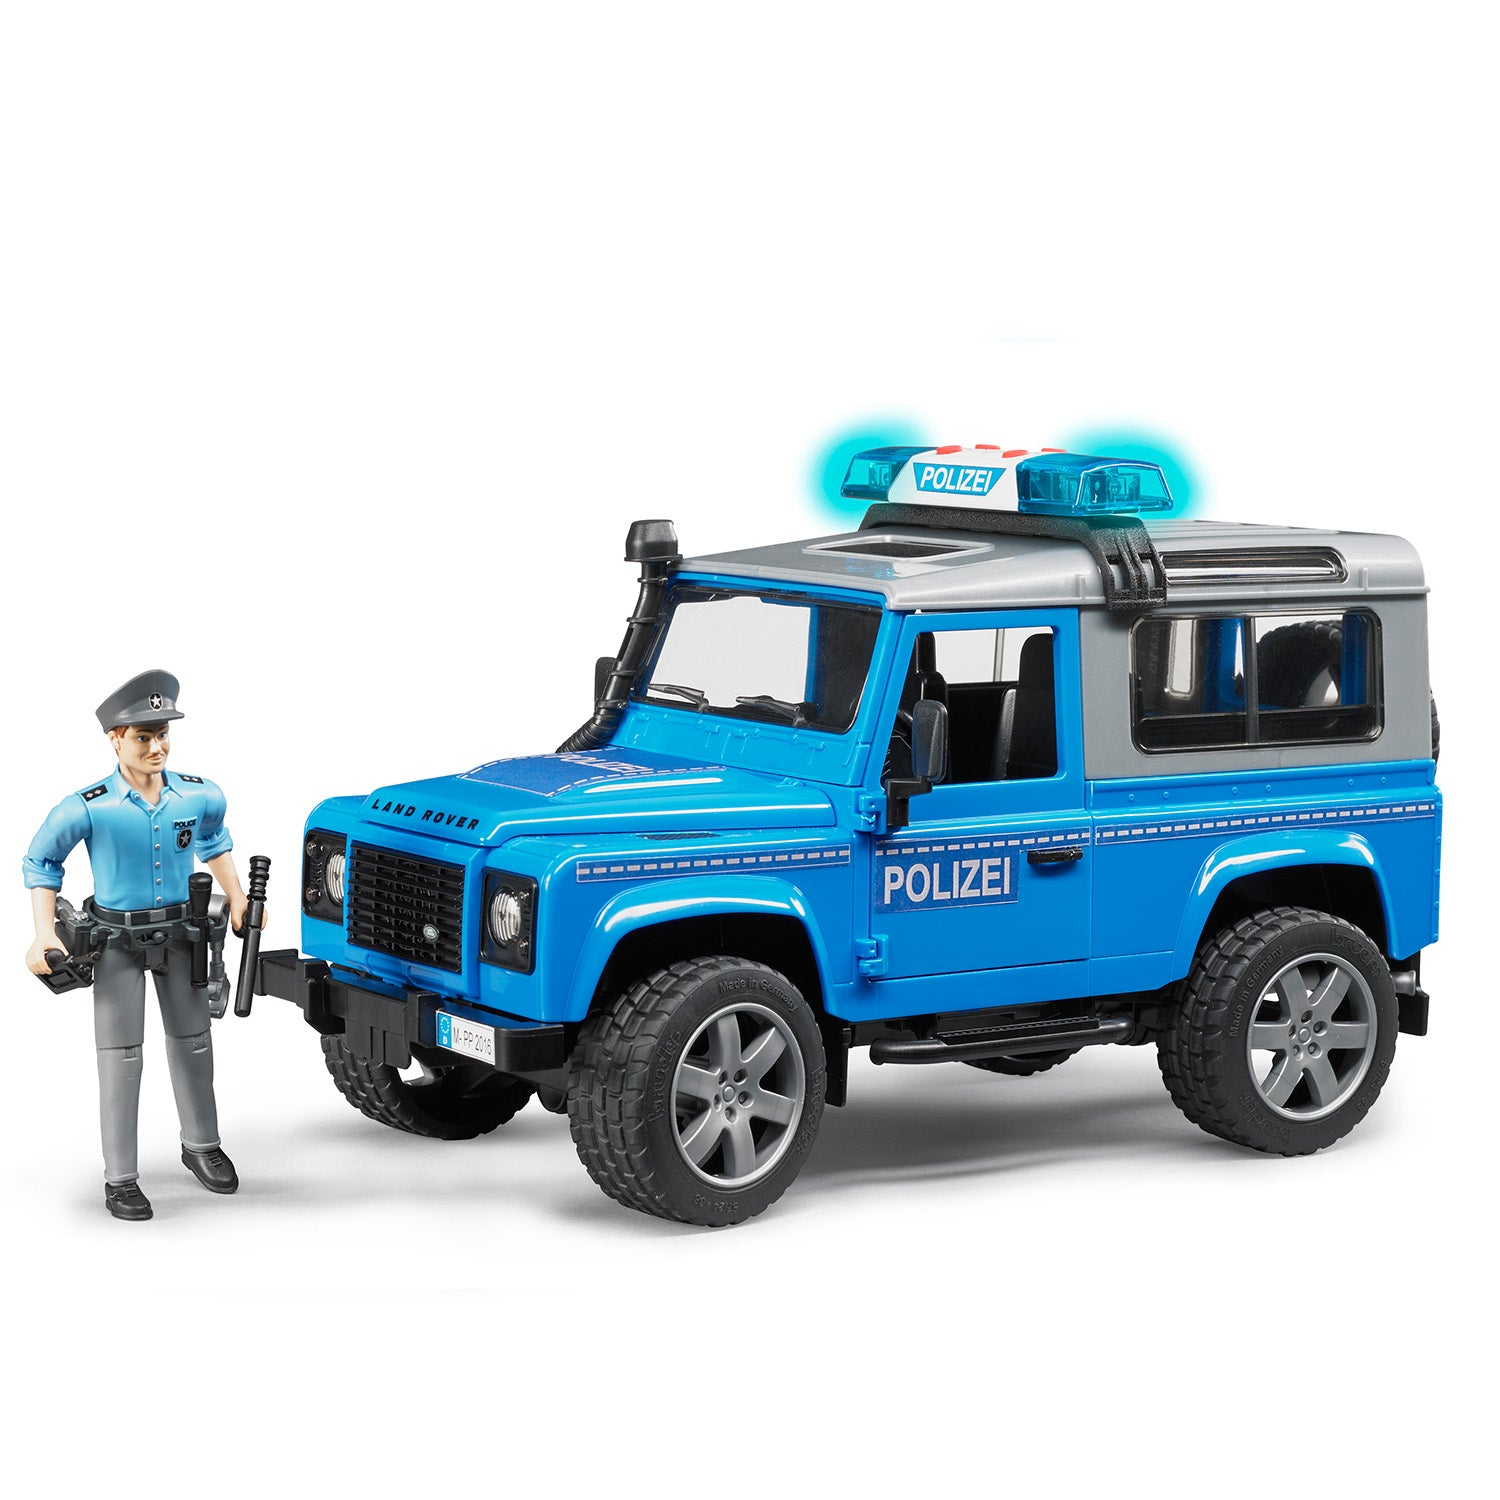 Land Rover Defender Station Wagon Police Vehicle with Policeman